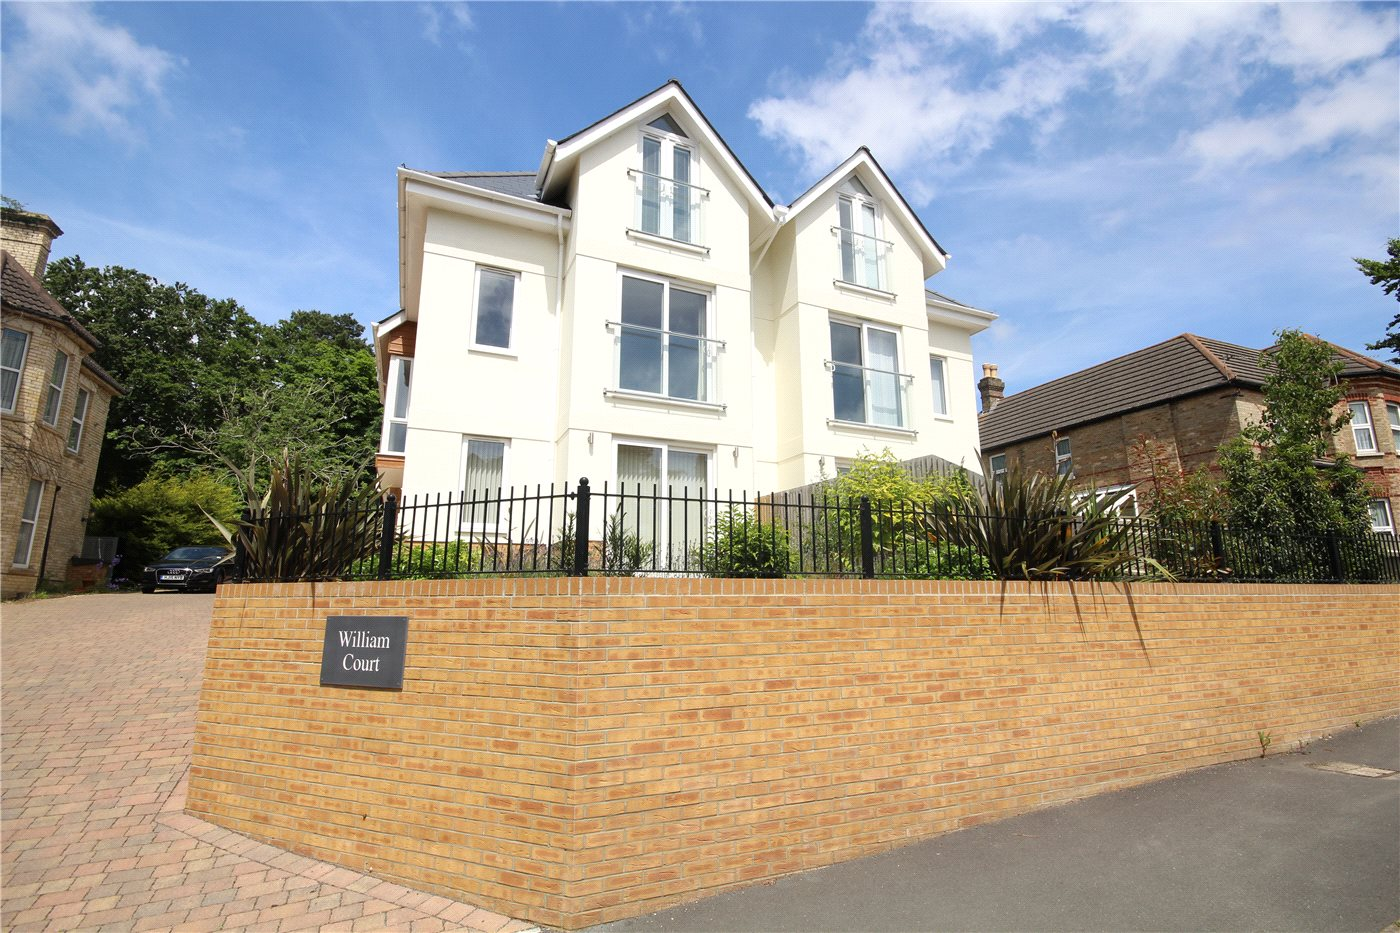 3 Bedrooms Town House for sale in Sandringham Road, Lower Parkstone, Poole, Dorset, BH14